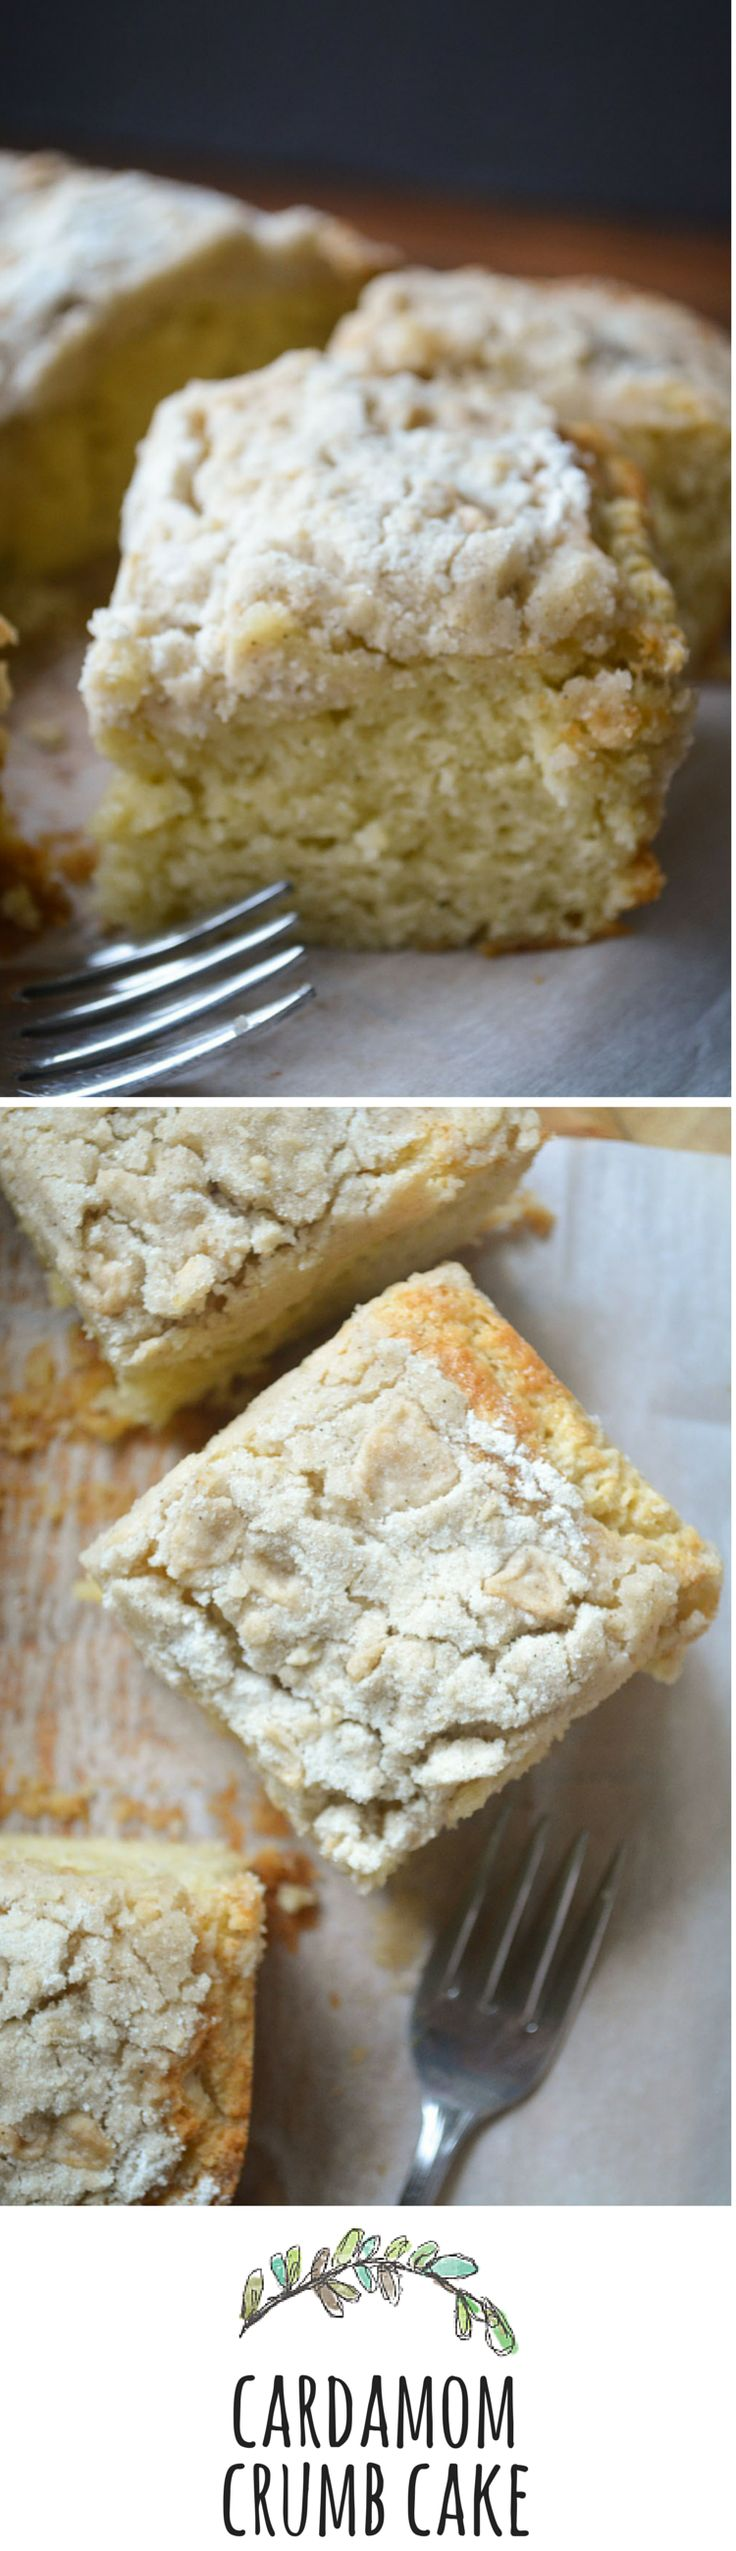 Classic New York style crumb cake with a twist!